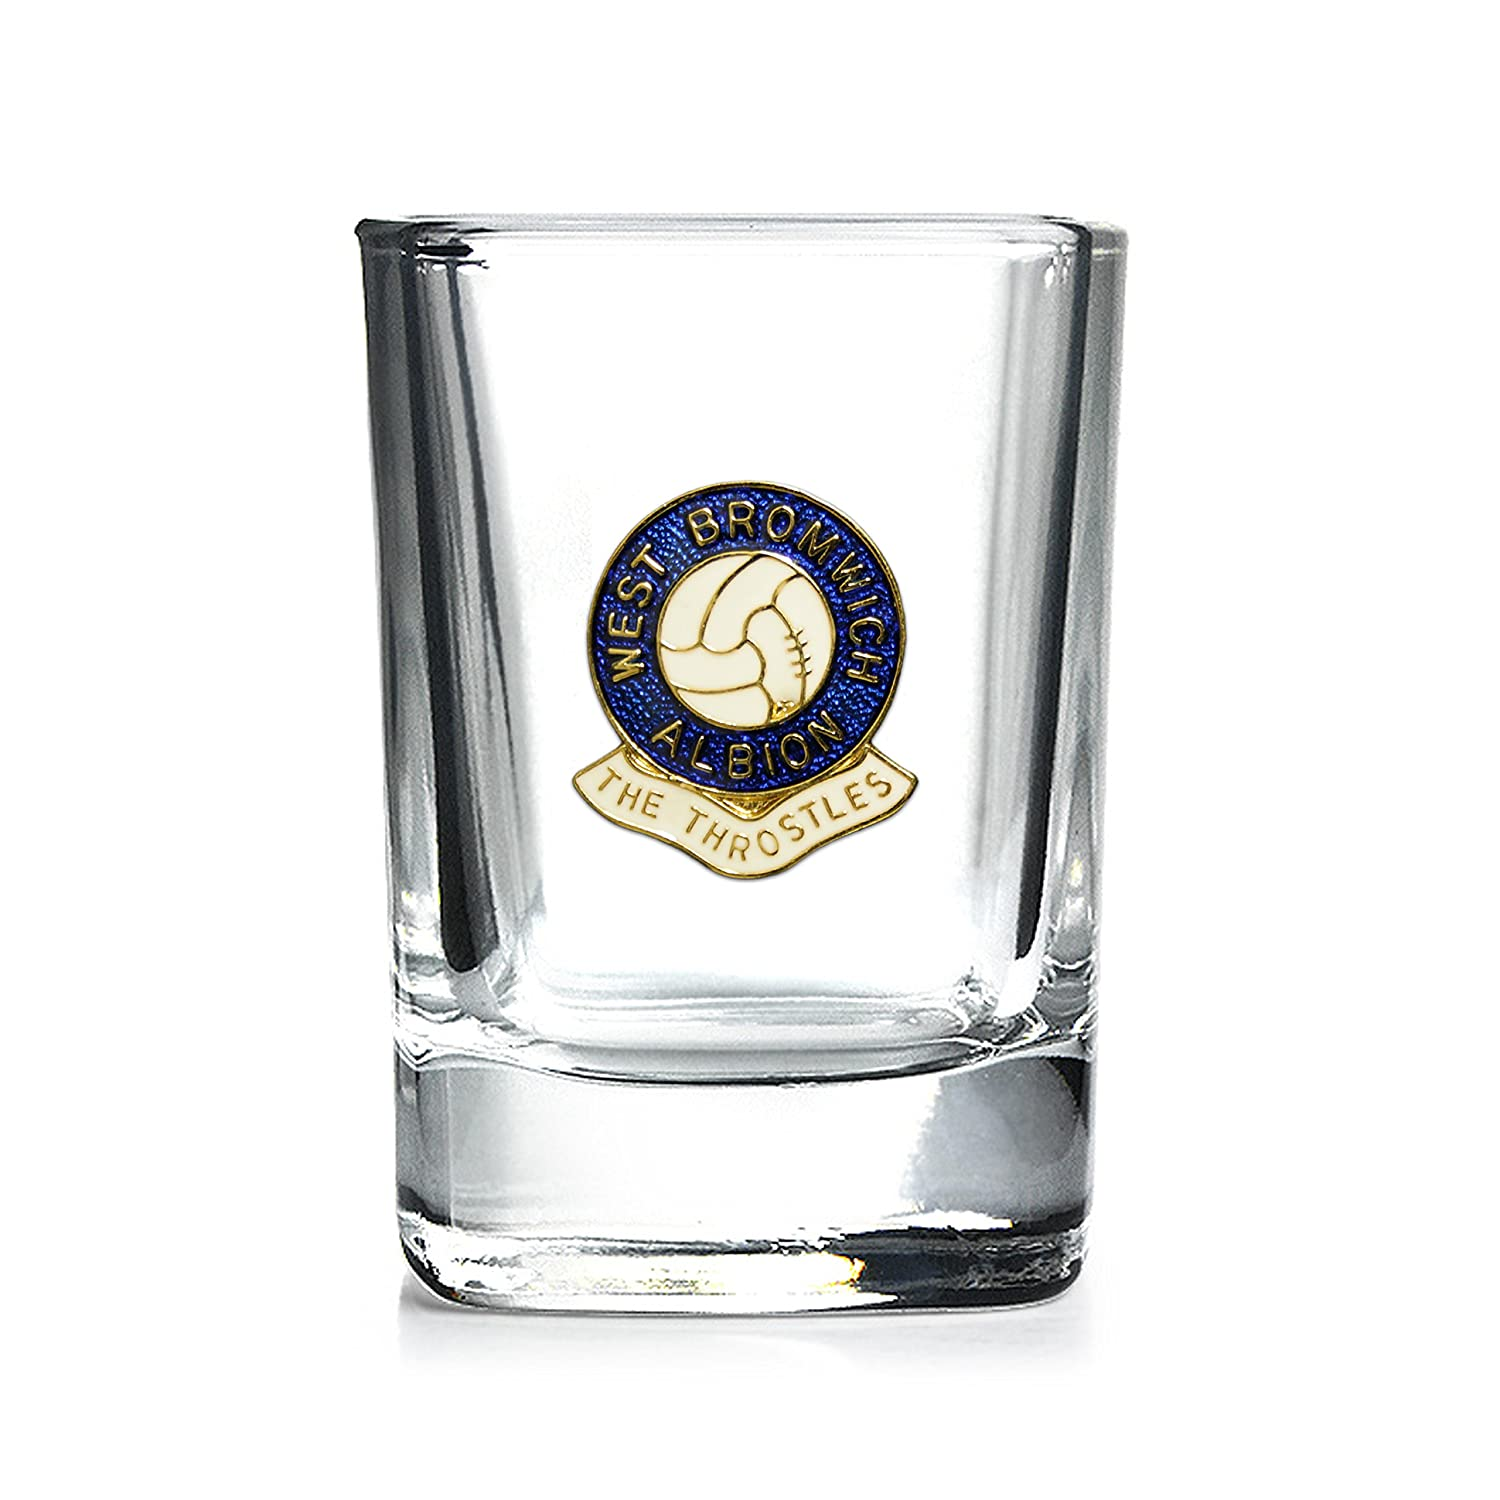 West Bromwich Albion football club mixer glass